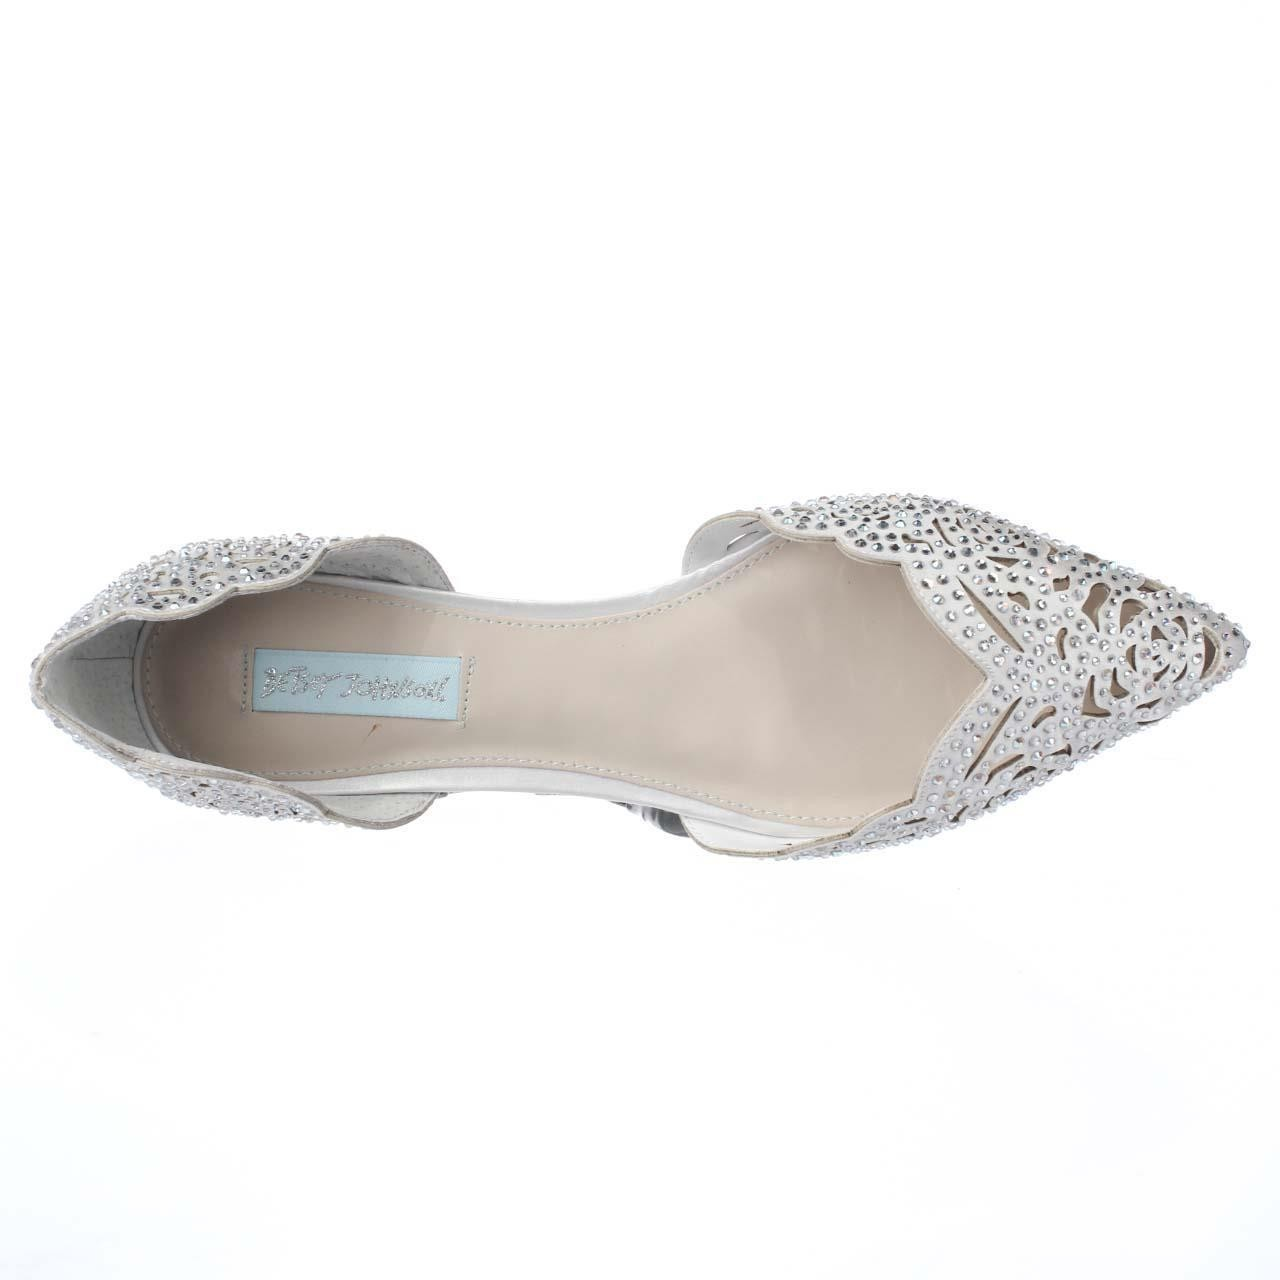 Lucy Flat ($99.00)